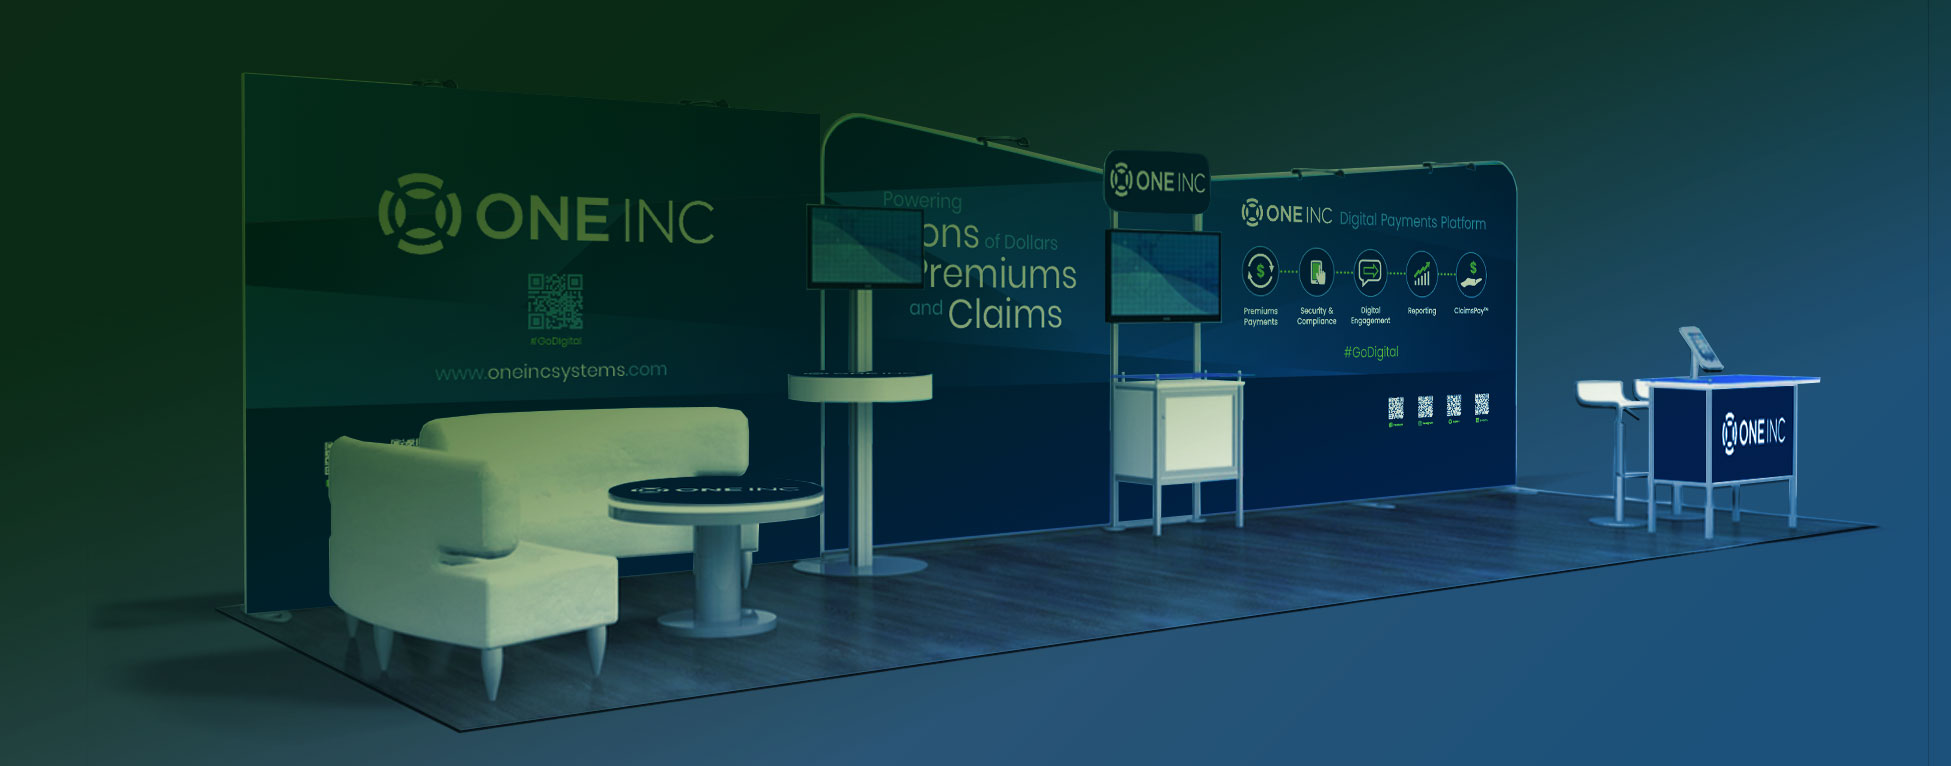 OneInc-Booth-banner